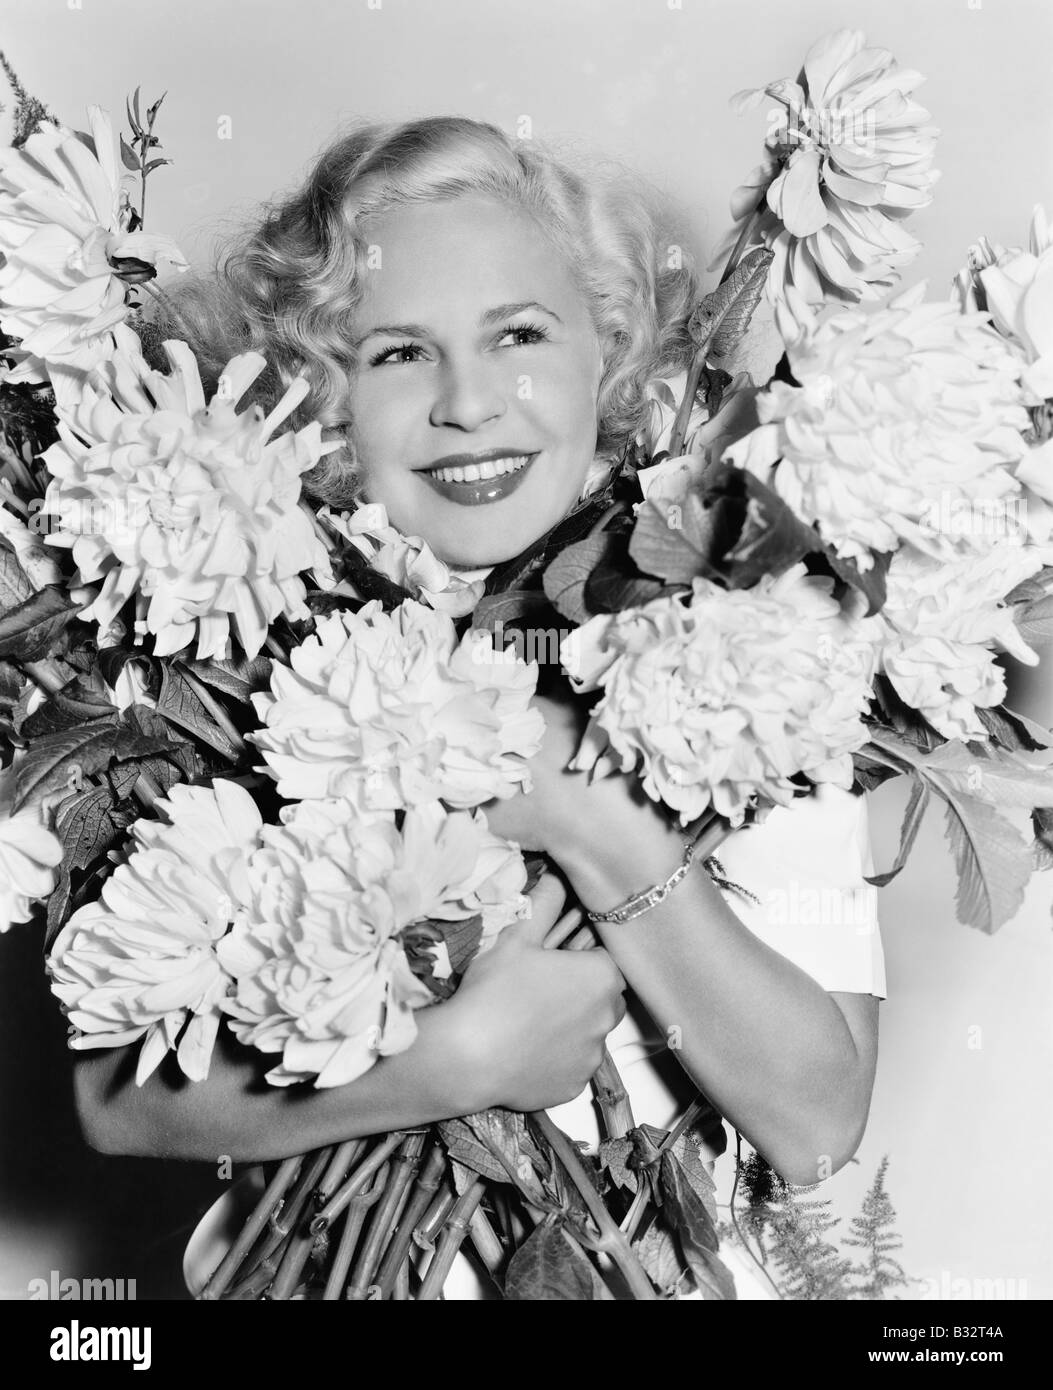 Portrait of a young woman holding a bunch of flowers looking happy - Stock Image